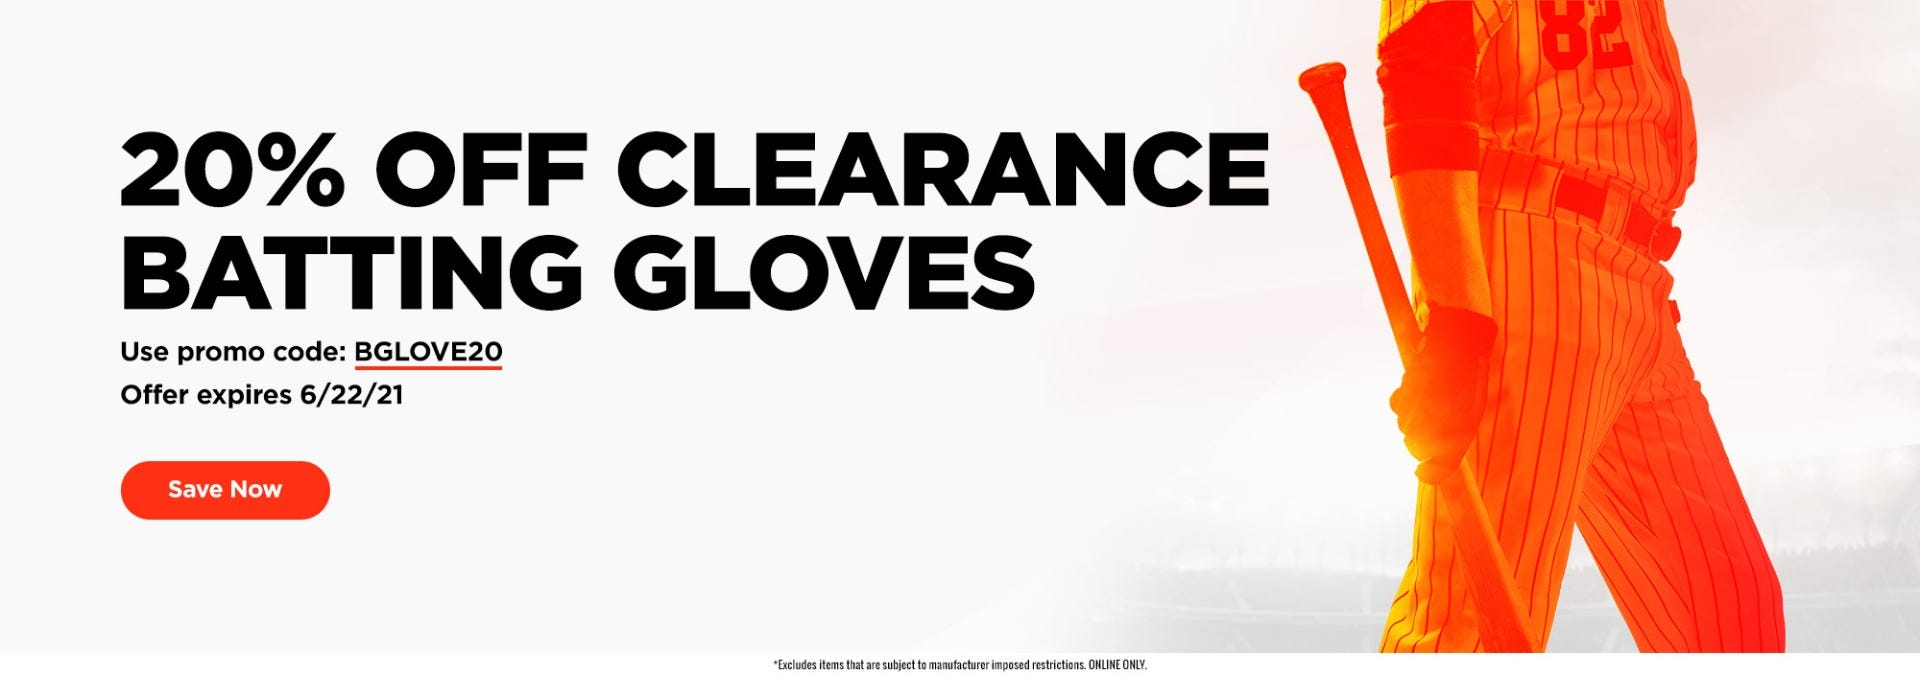 20% Off Clearance Batting Gloves